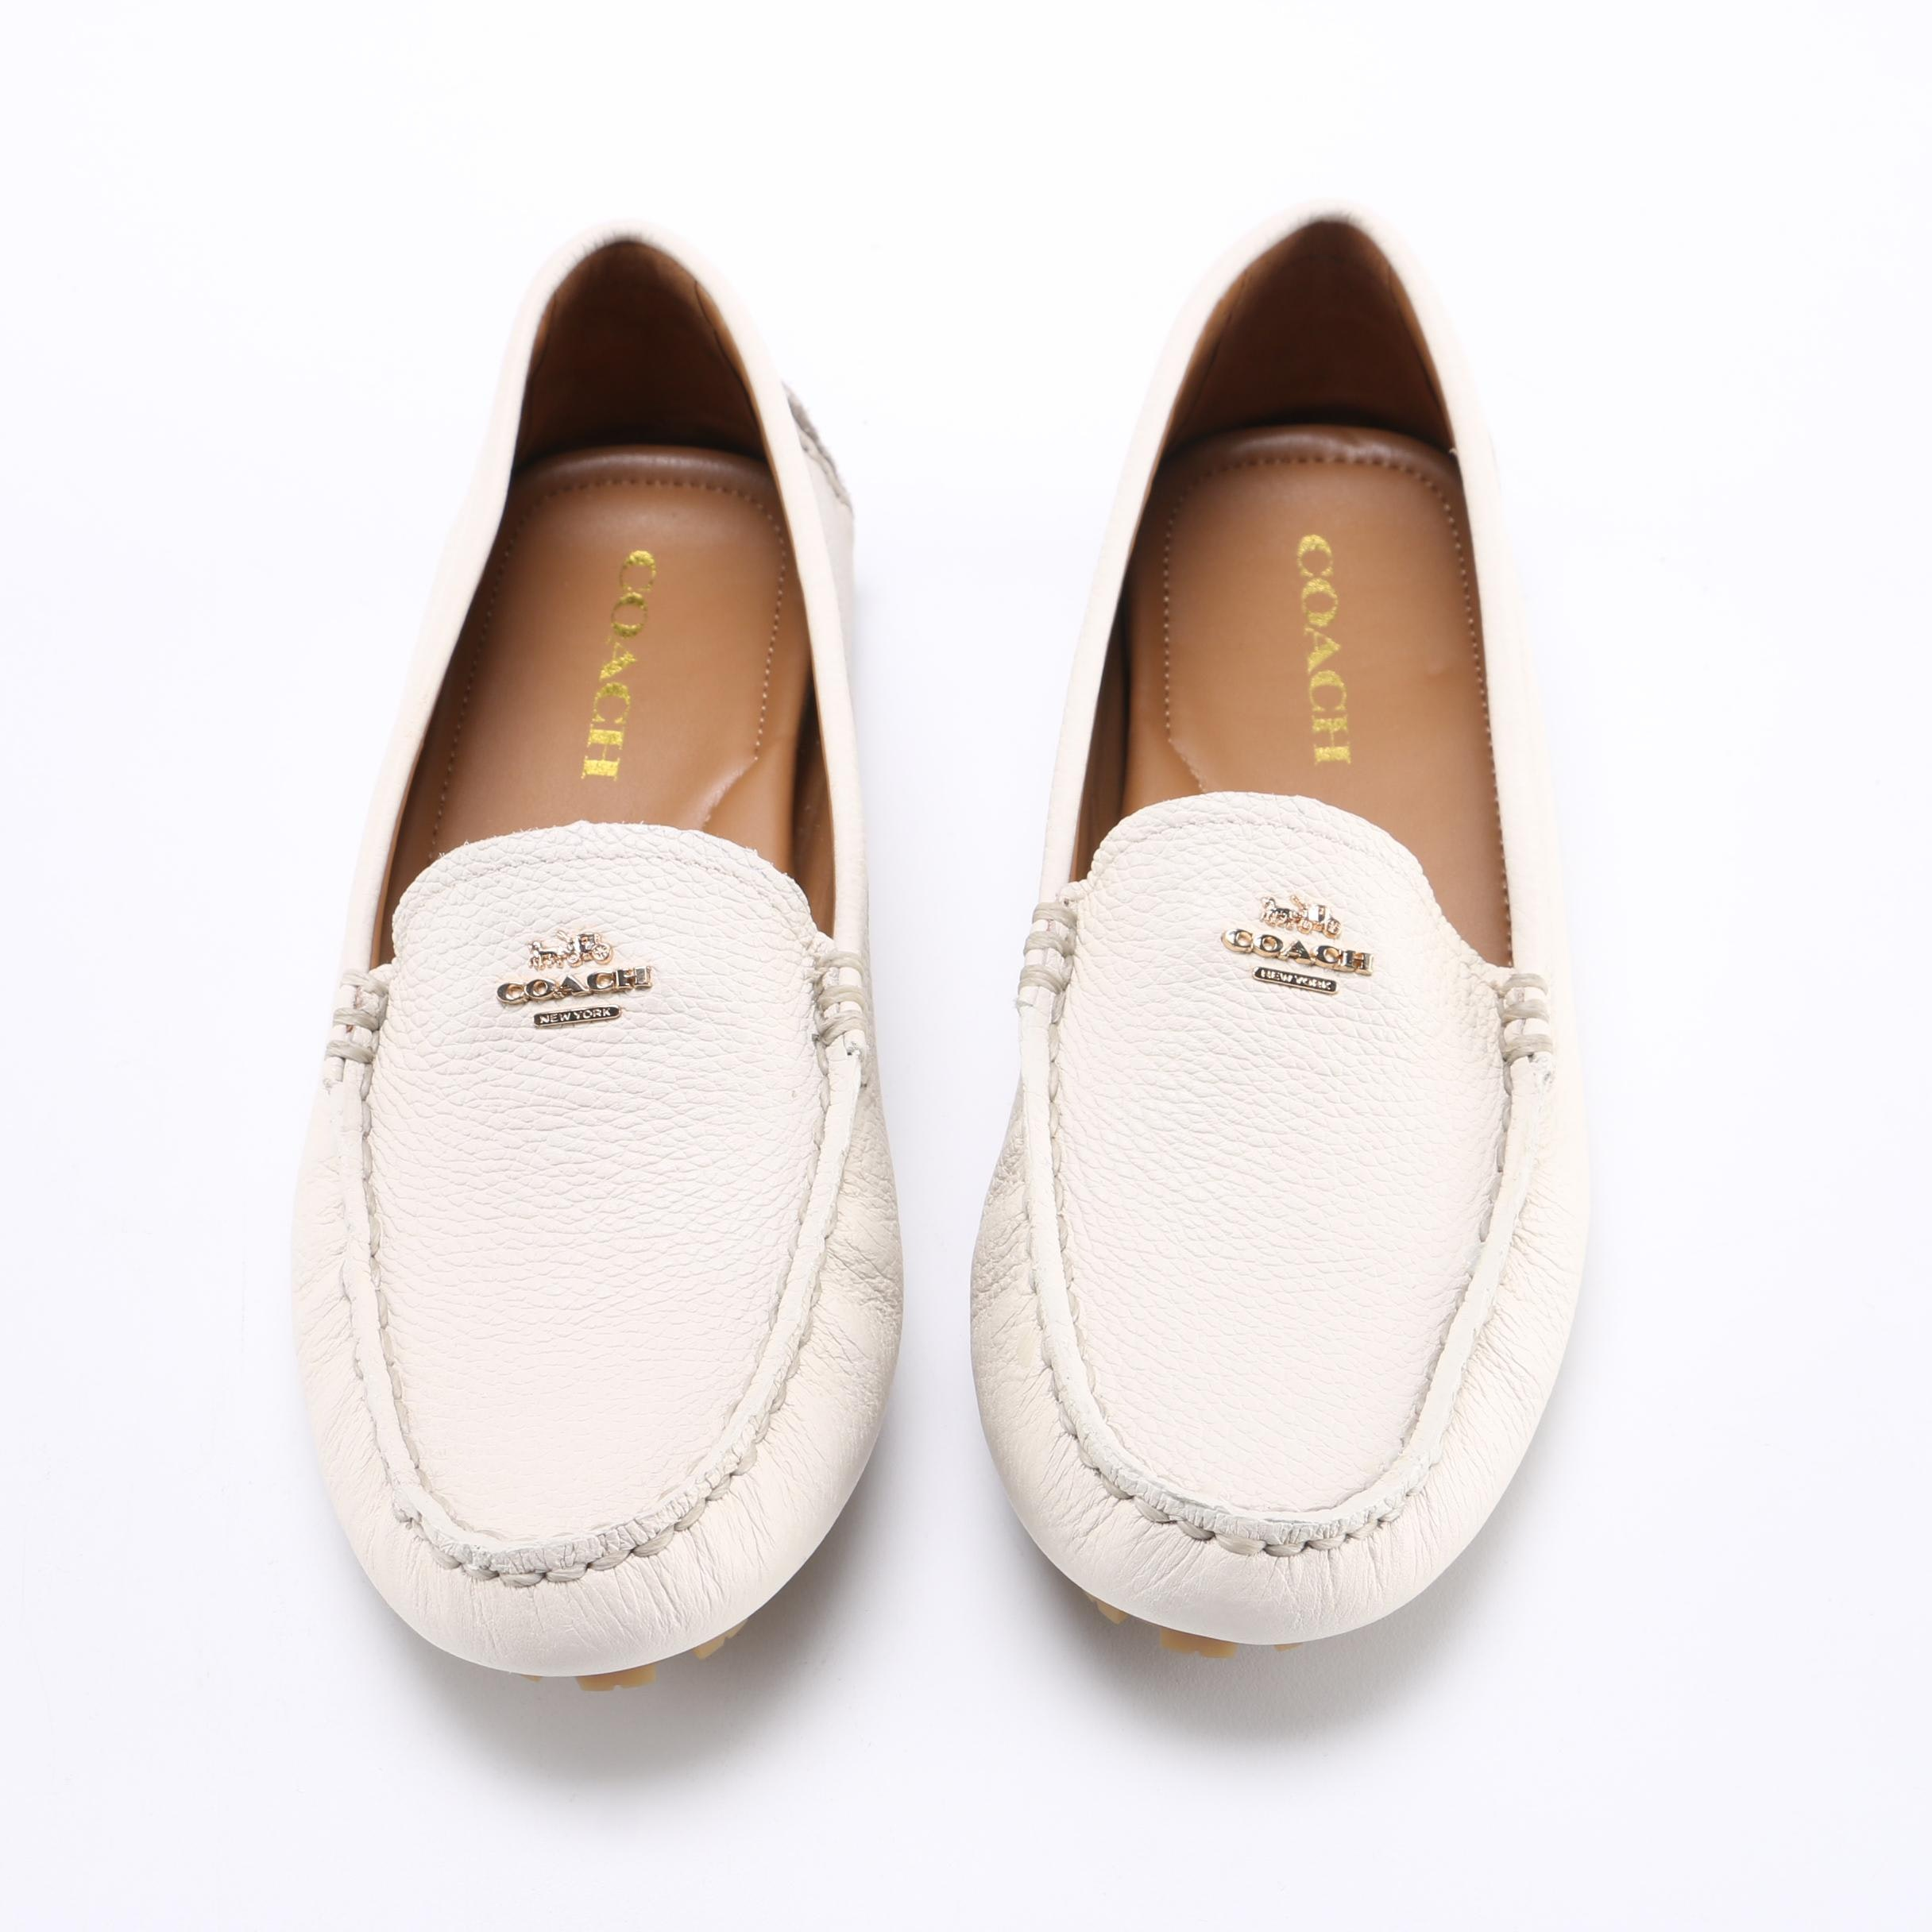 Coach White Pebbled Leather Driving Loafers